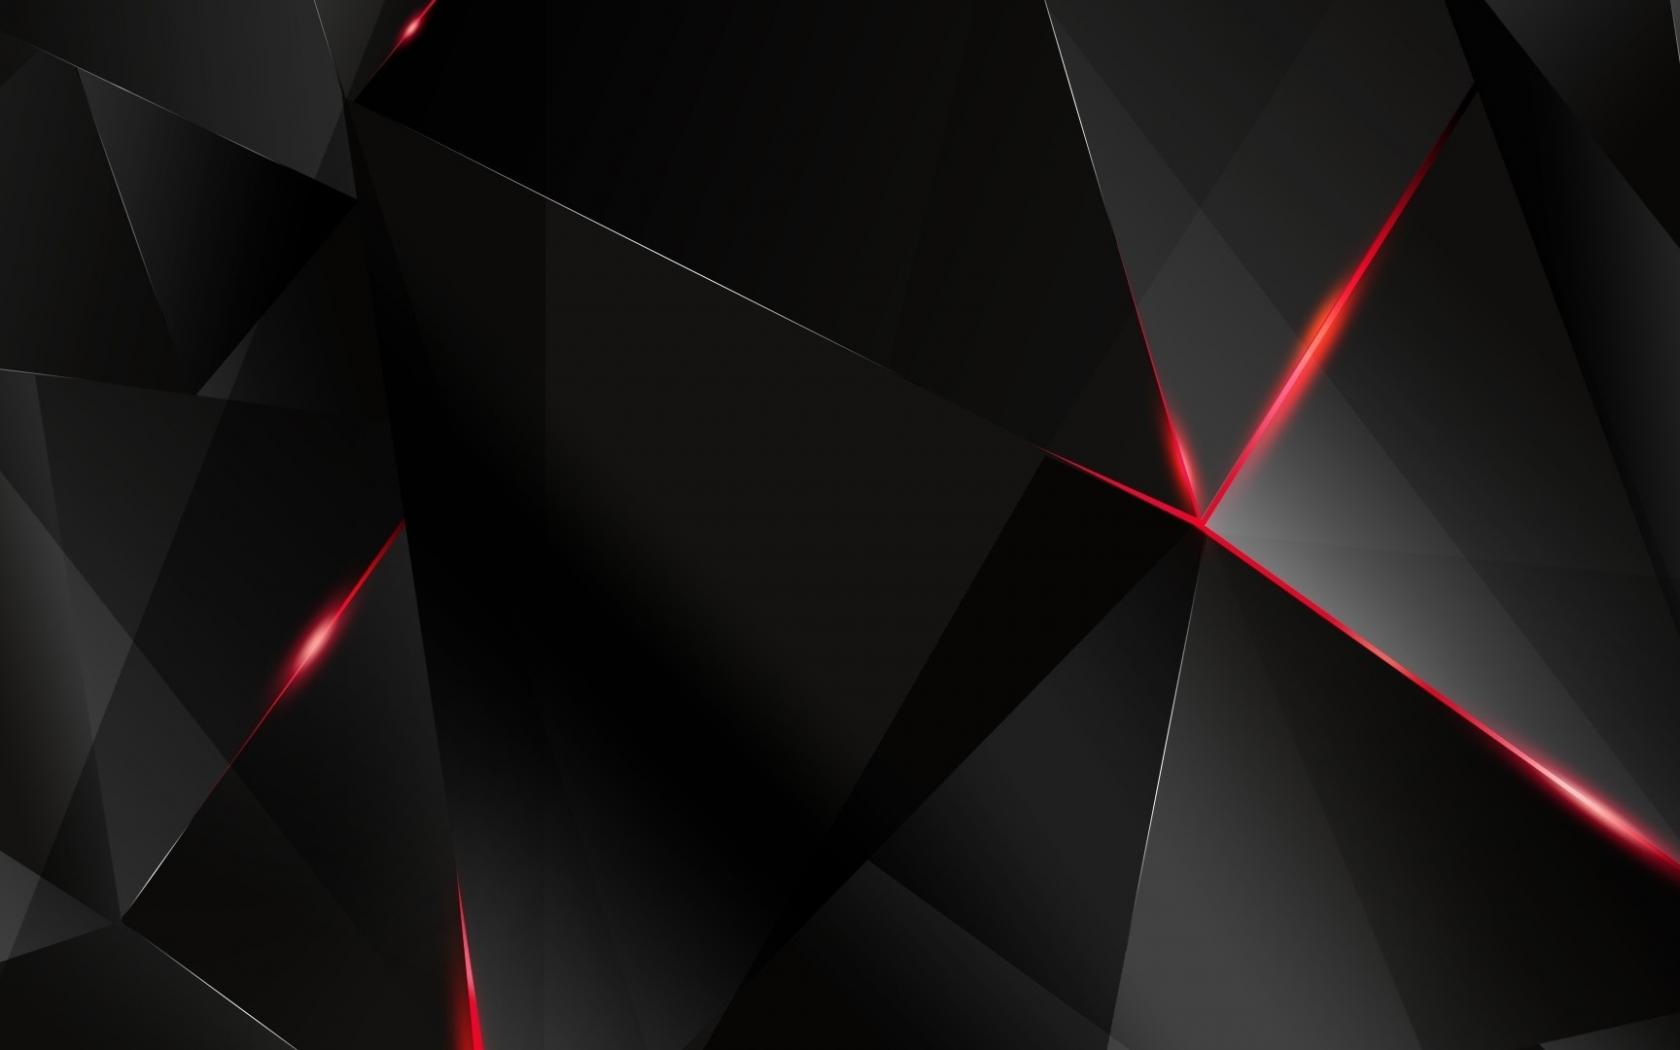 4k Black Wallpapers For Windows 10 02 Of 10 Black And Red 3d Polygons Hd Wallpapers Wallpapers Download High Resolution Wallpapers